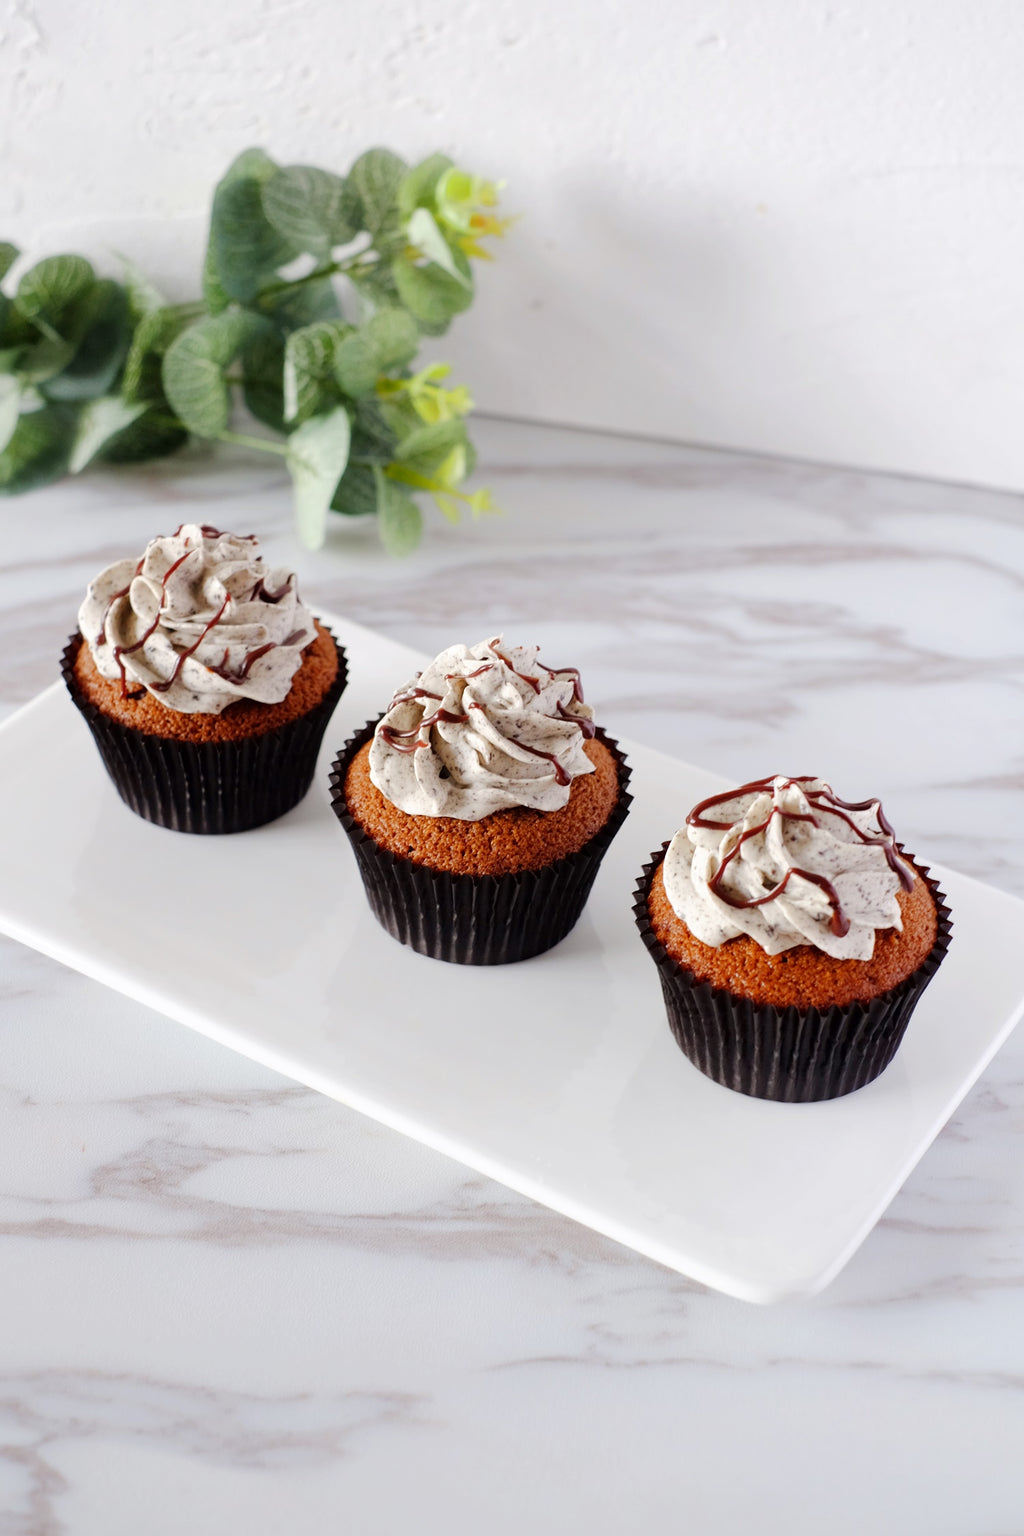 Oreo Chocolate Malt Cupcakes ($3.50/Pc)